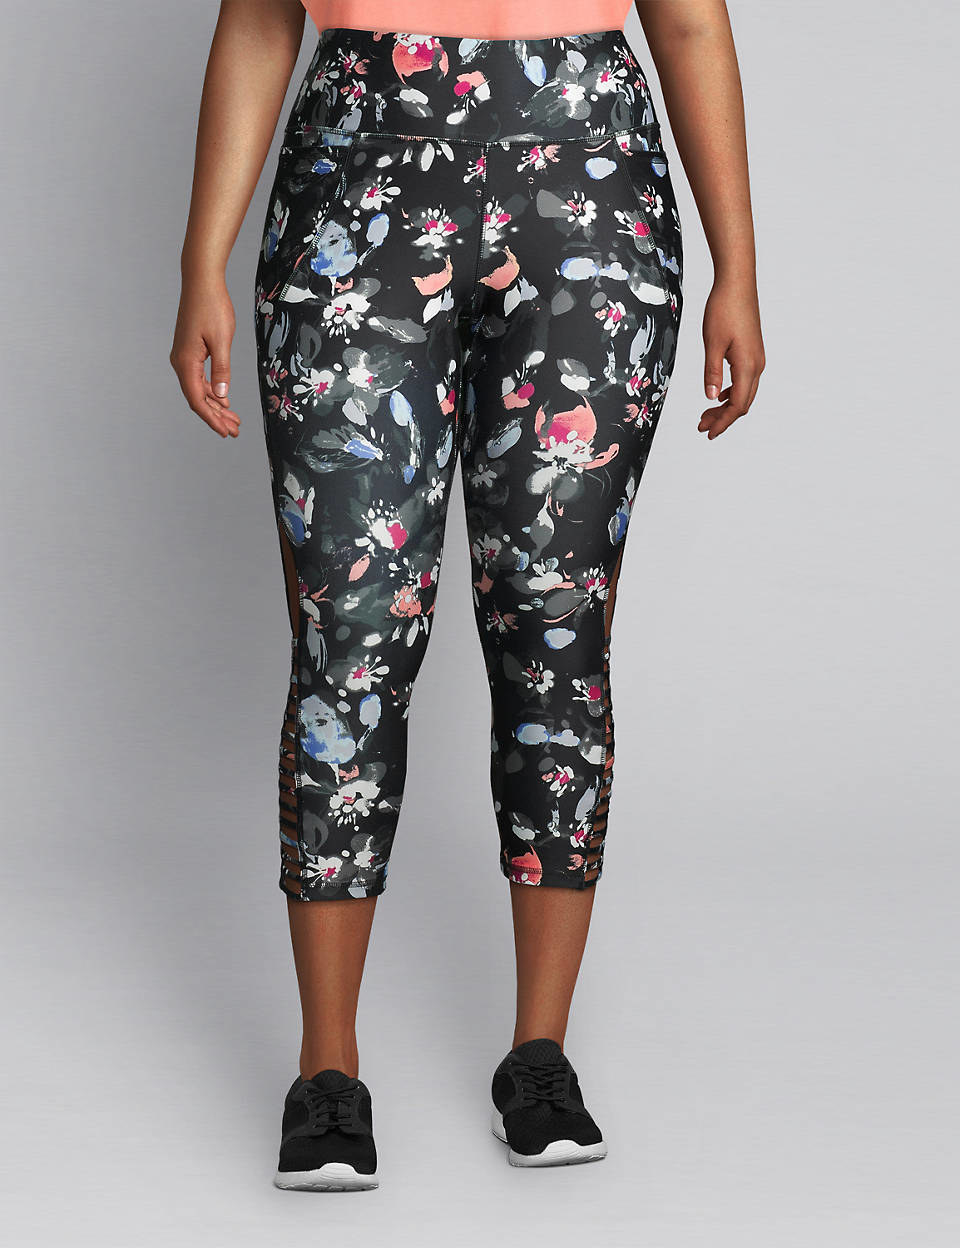 The capri legging with a wide waistband and strappy ladder detailing on the bottom side in black with a white, pink, blue, and grey floral print all over it